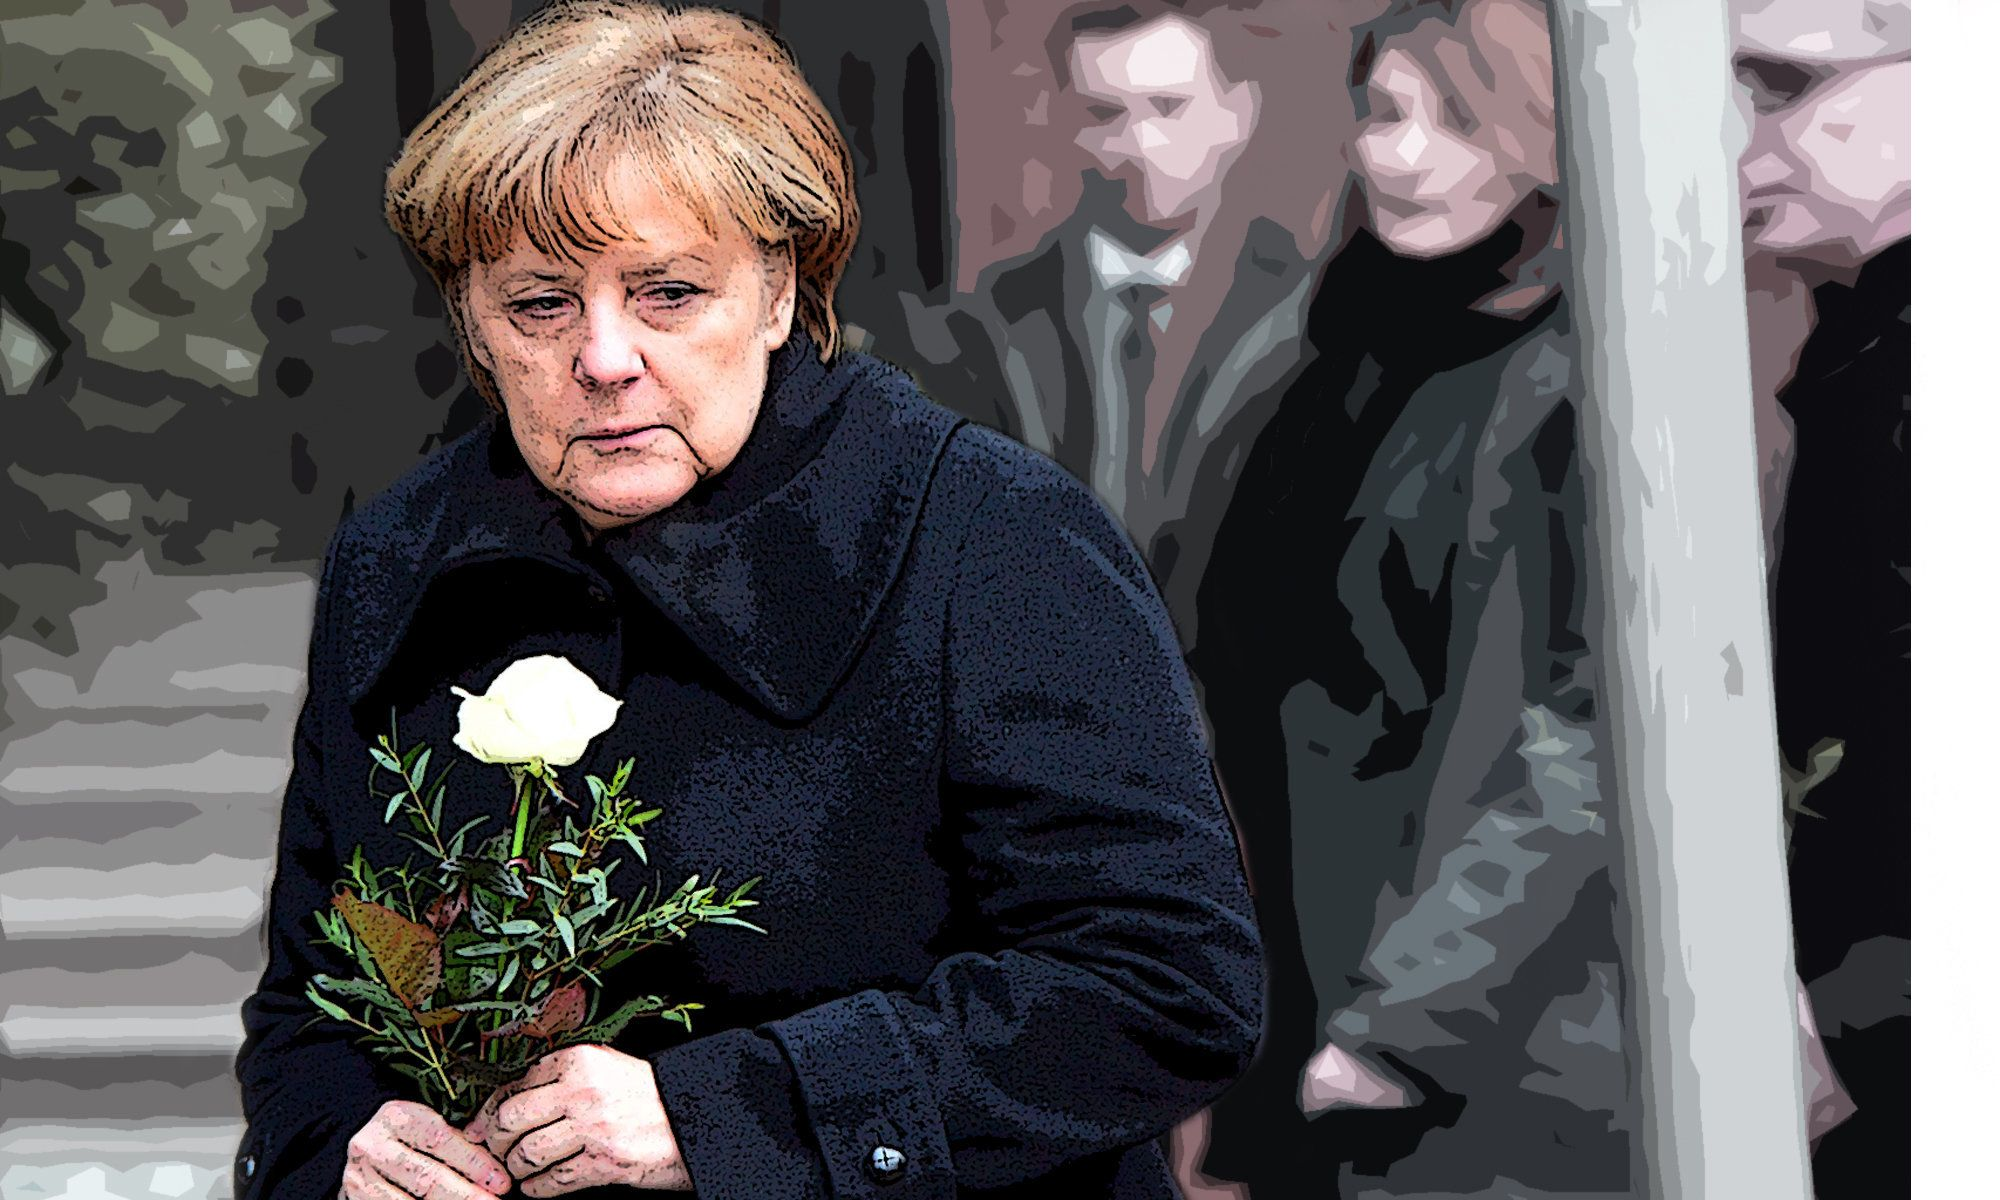 Angela Merkel visits the site of the Berlin Market attack